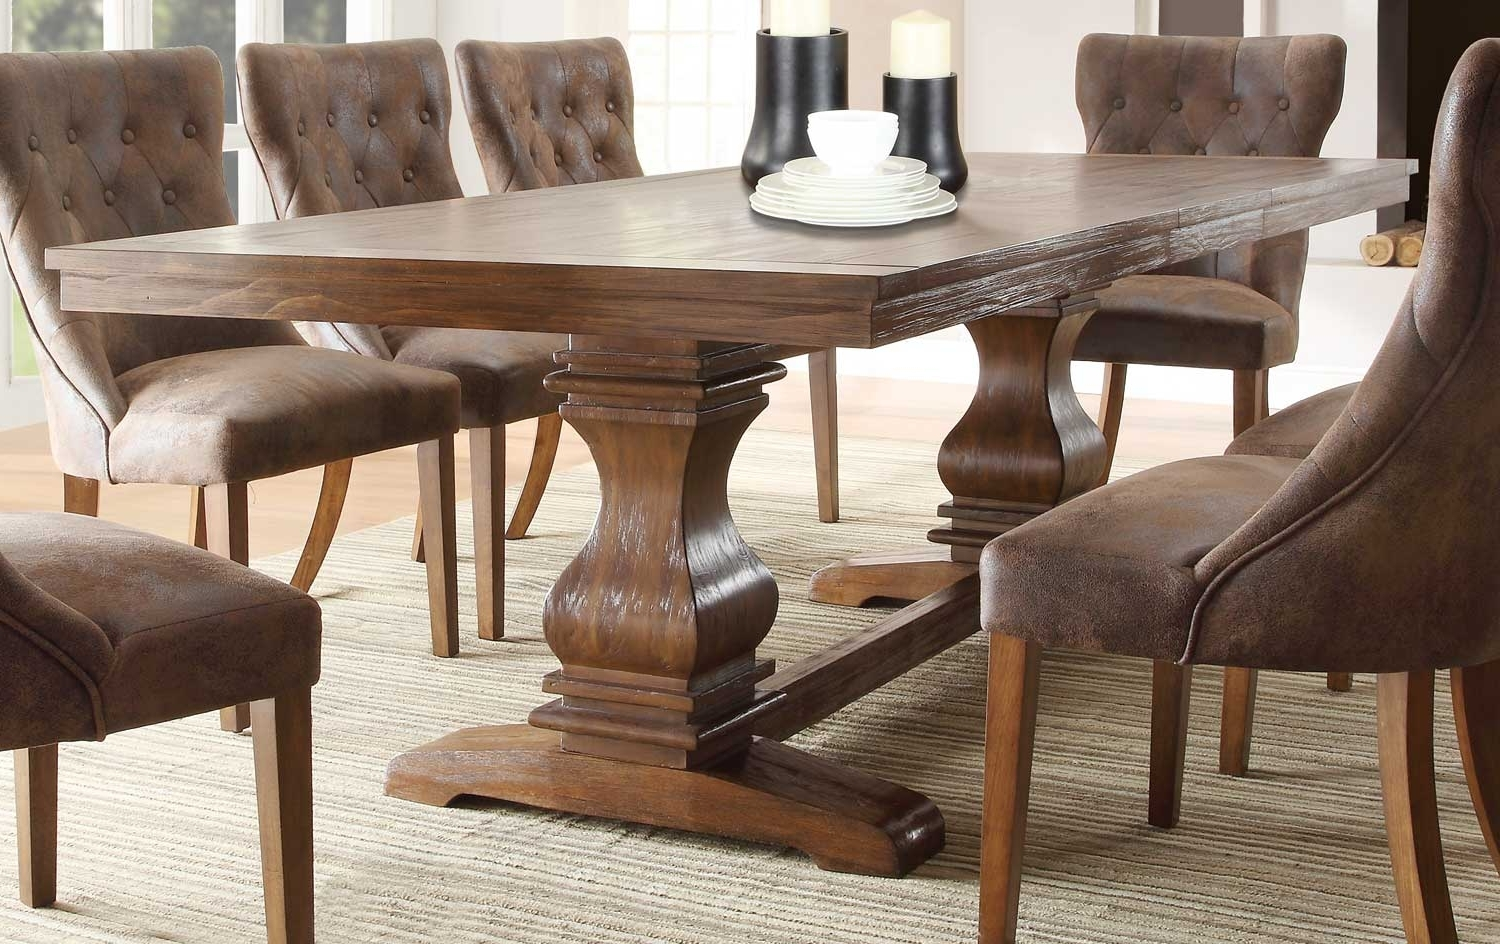 Homelegance Marie Louise Dining Table – Rustic Oak Brown 2526 96 Pertaining To Well Known Rustic Dining Tables (View 10 of 25)